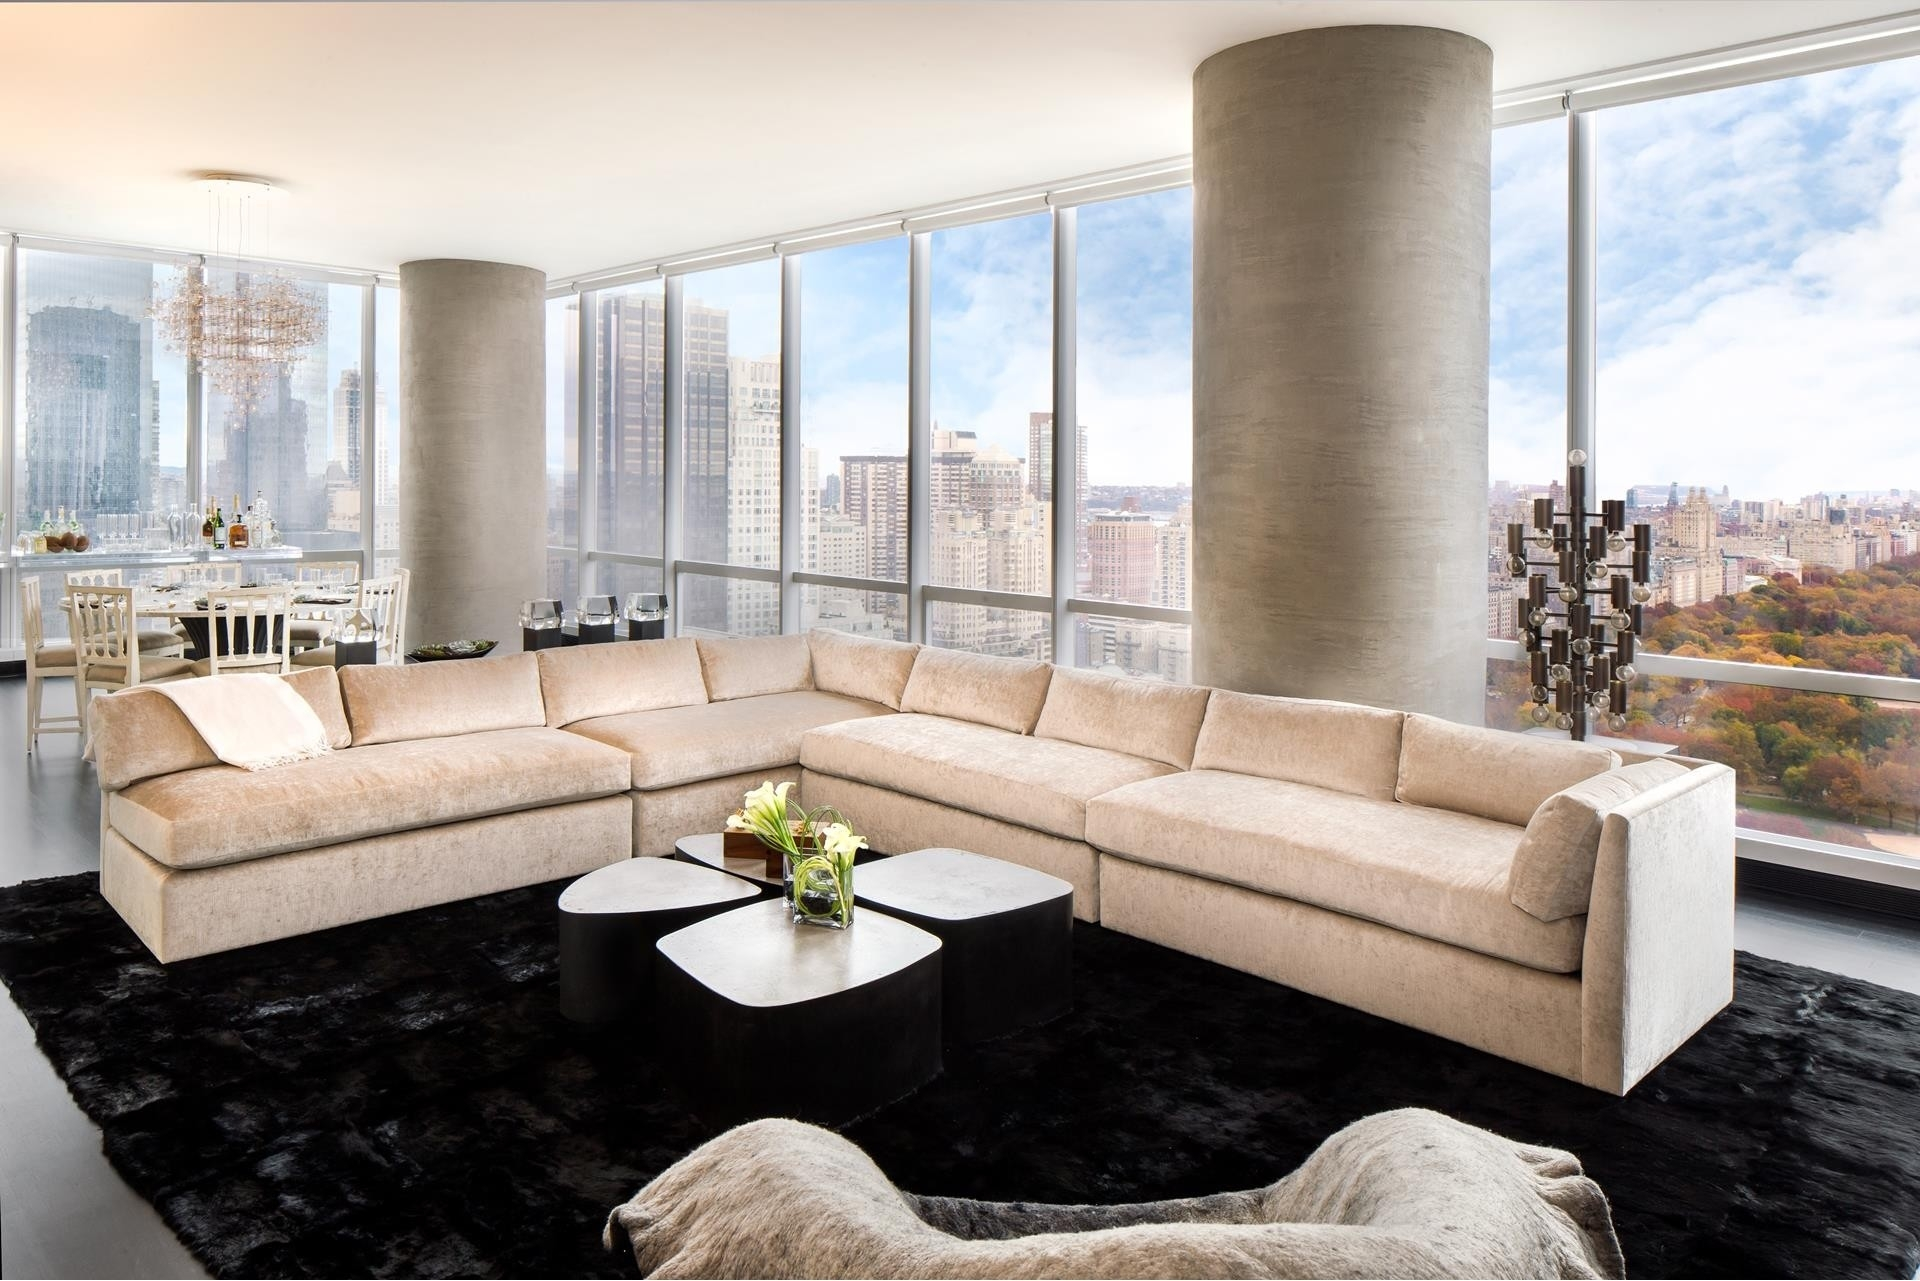 Property en One57, 157 West 57th St, 41A Midtown West, New York, NY 10019